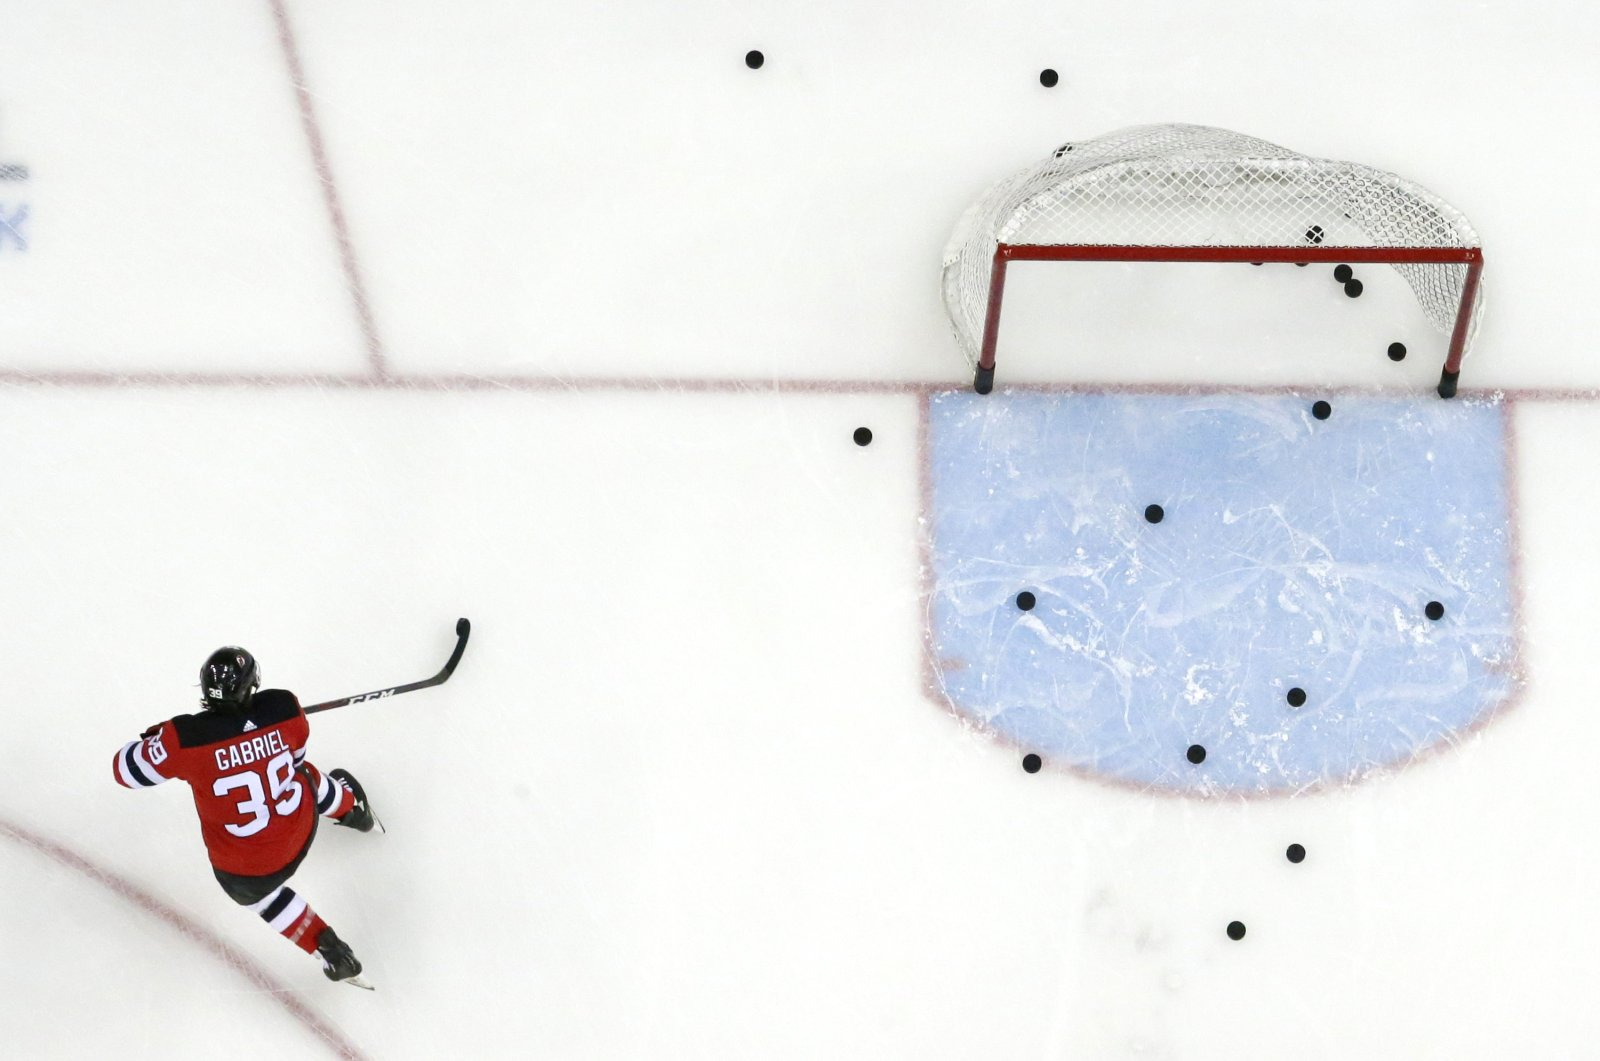 New Jersey Devils right wing Kurtis Gabriel works out prior to an NHL hockey game against the Buffalo Sabres in Newark, N.J., U.S., Feb. 17, 2019. (AP Photo)